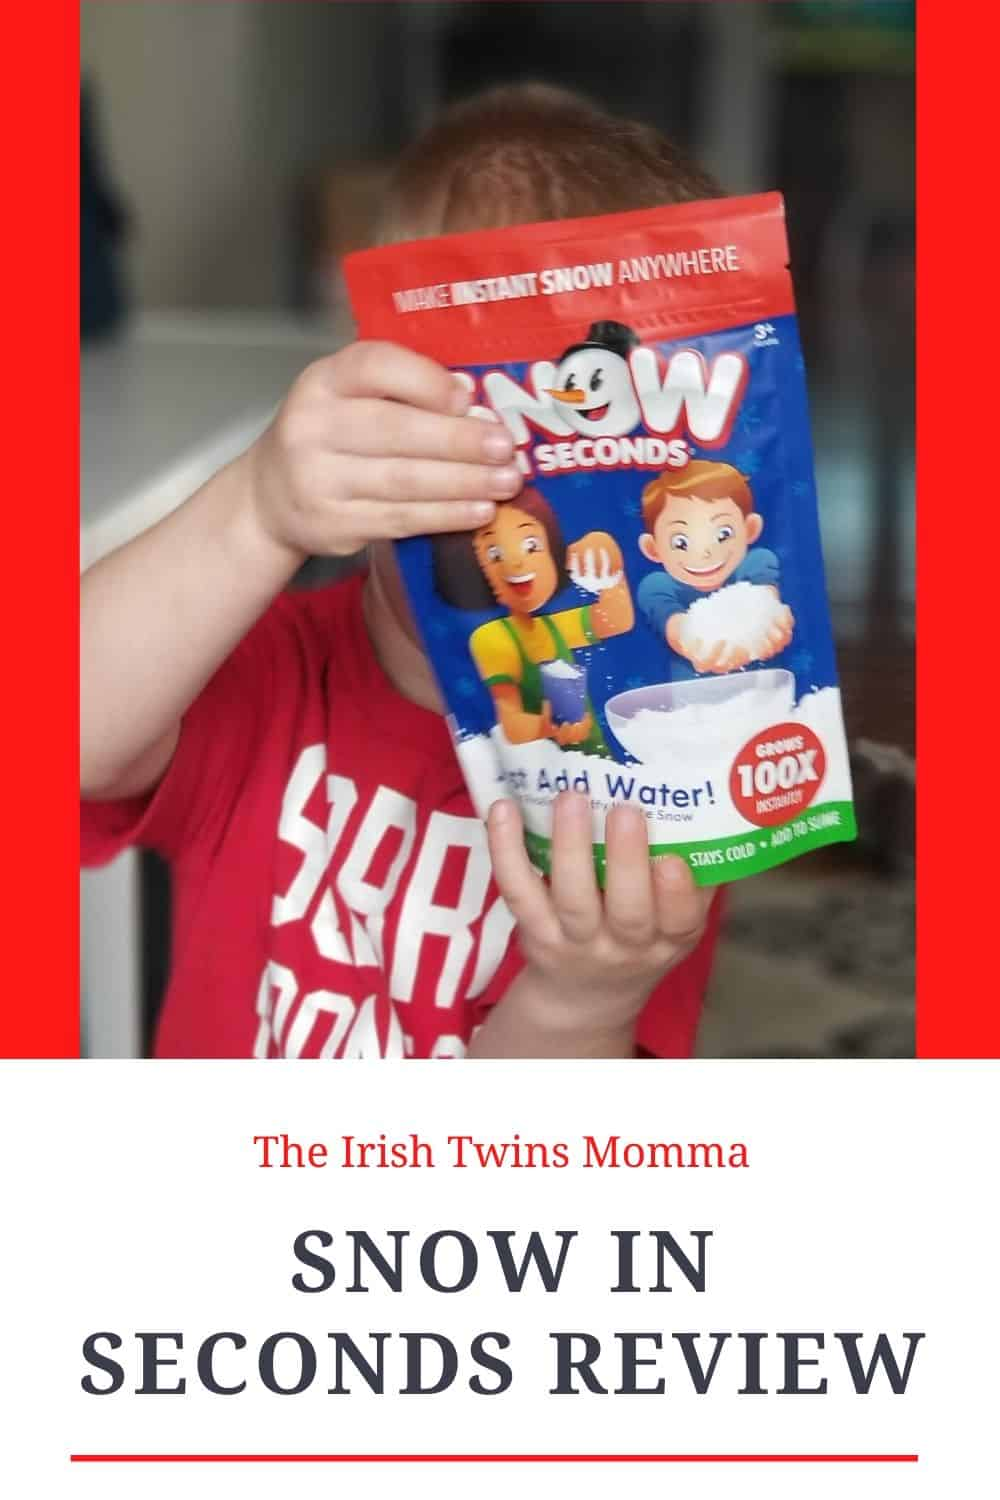 Snow in Seconds is a family-owned business that is the creator of the original fake snow. Their product is made in the U.S. and is the only instant snow that grows 100 times its size in just seconds. via @irishtwinsmom11